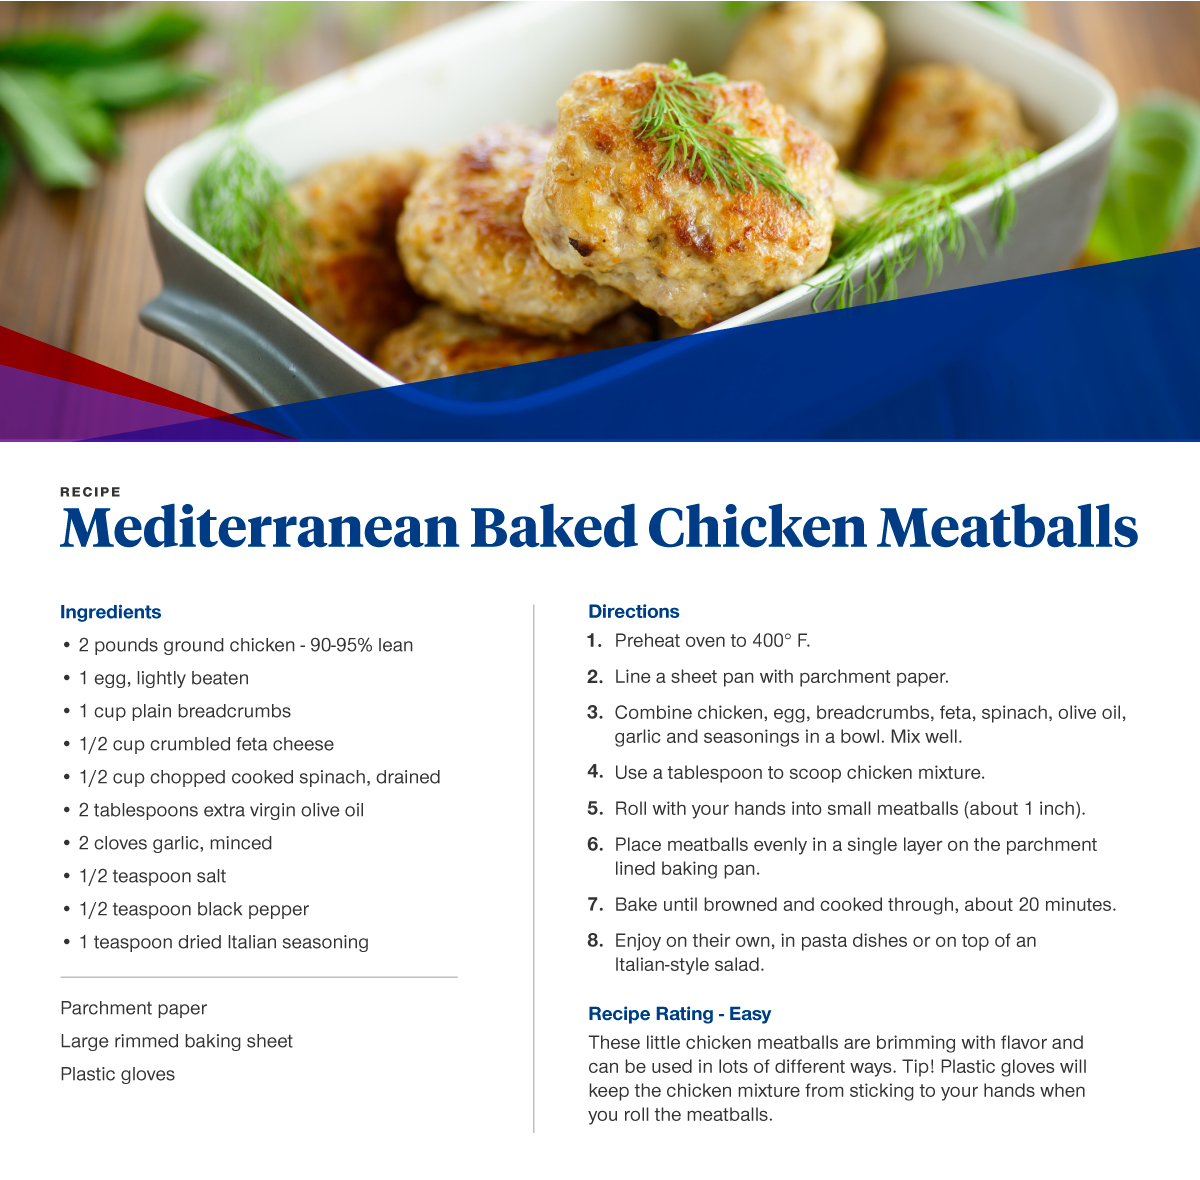 baked chicken meatballs recipe  card with ingredients and directions also listed below.